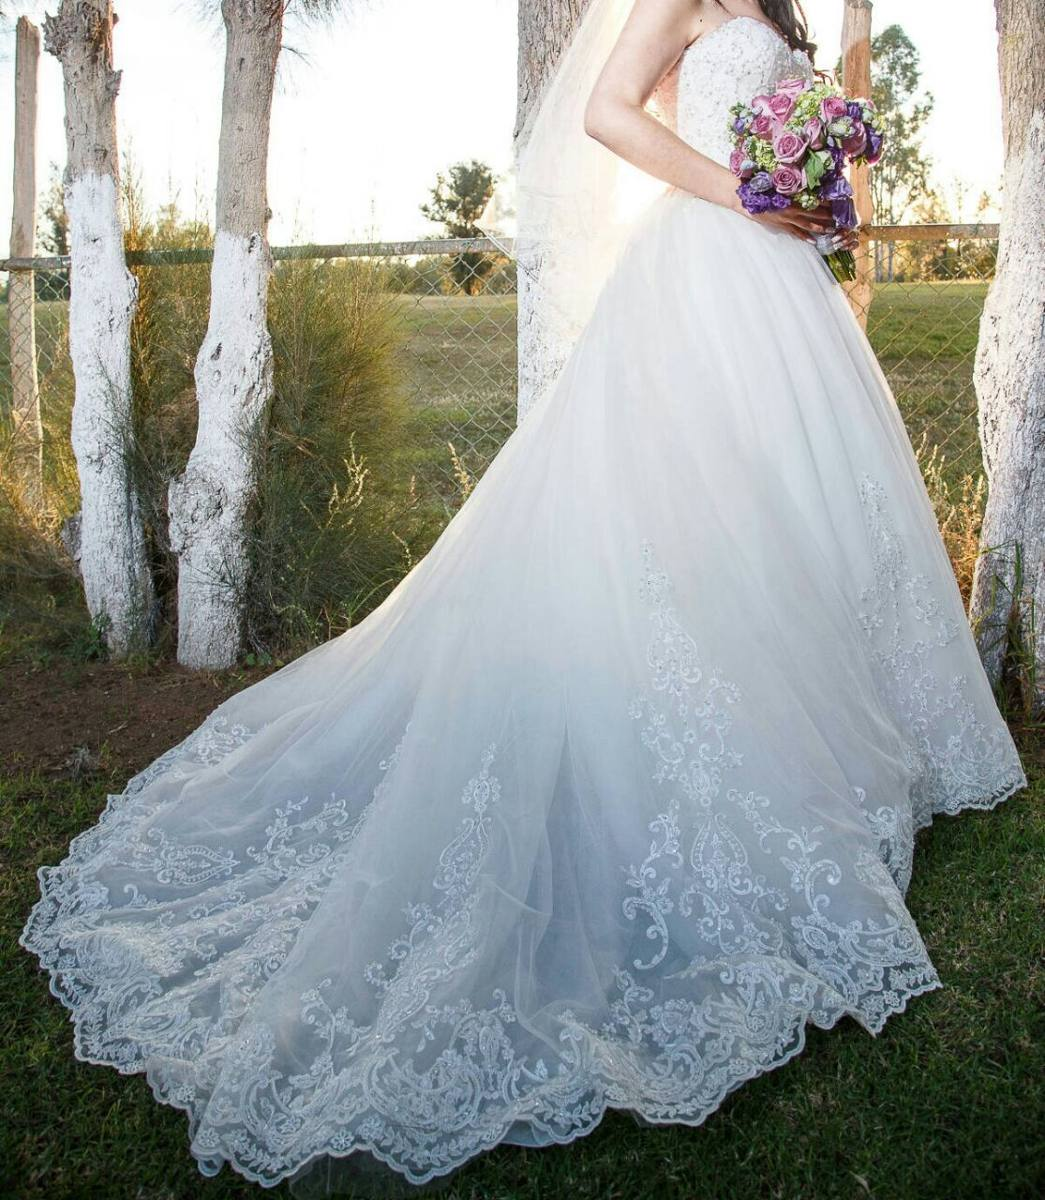 Unusual Venta Vestidos De Novia Usados Ideas - Wedding Ideas ...